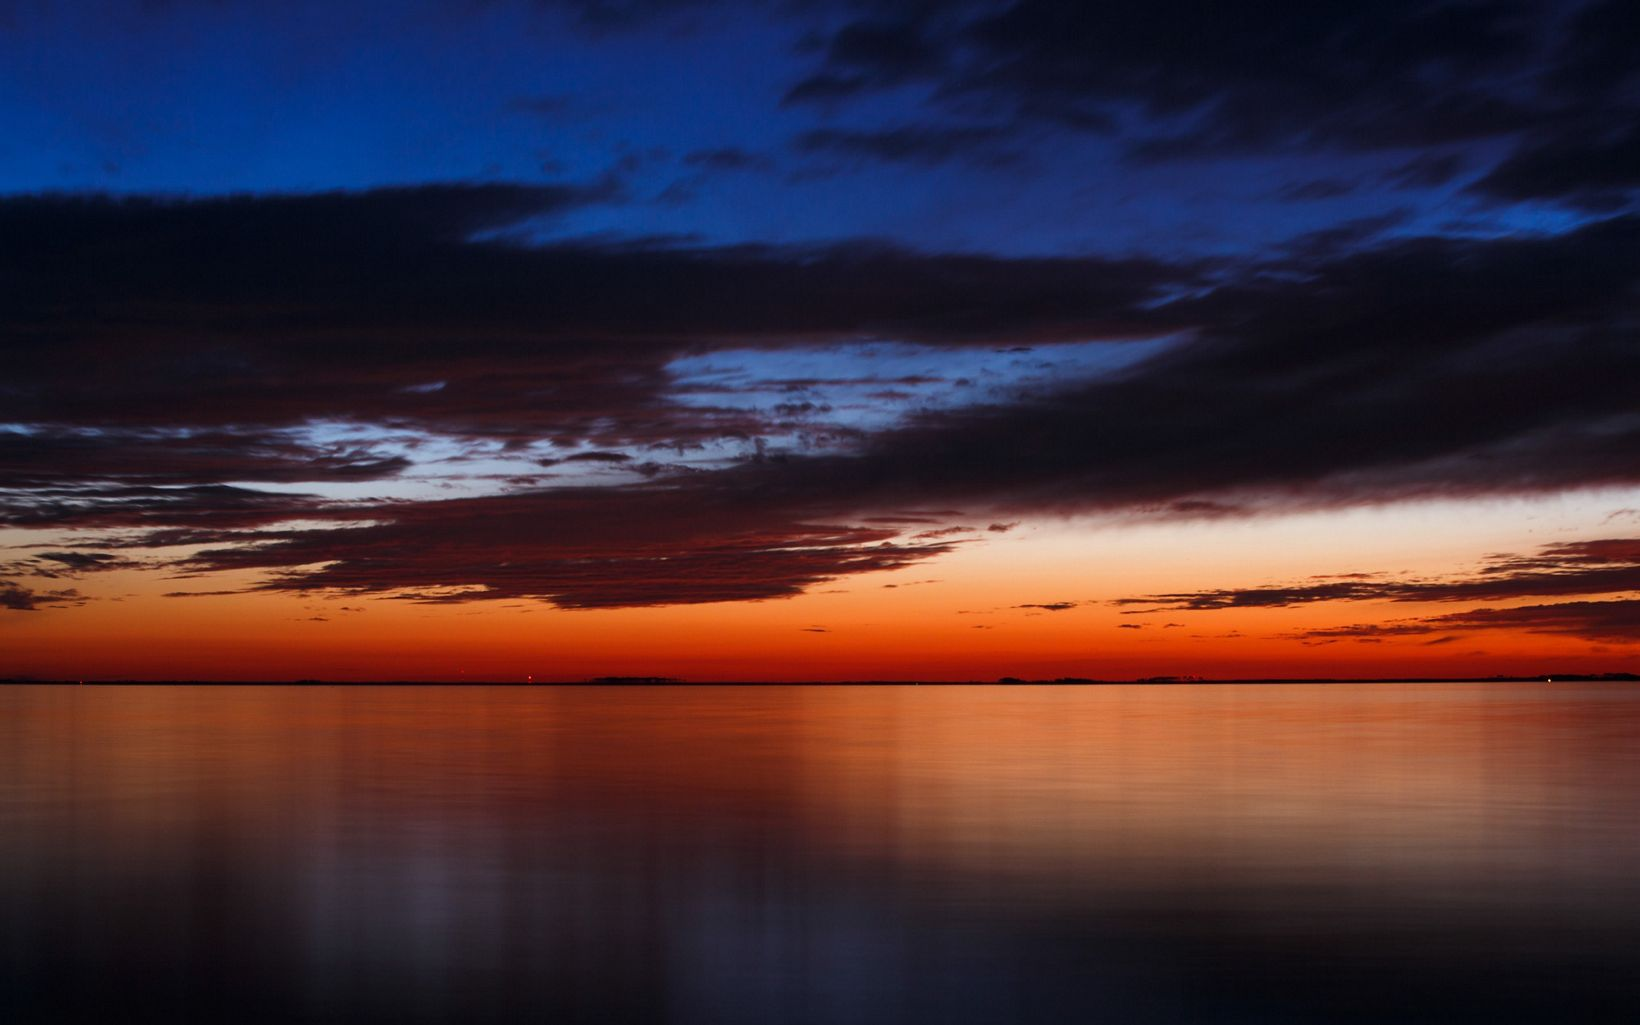 Flat water, a red sunset, and a dark blue, clouded sky.